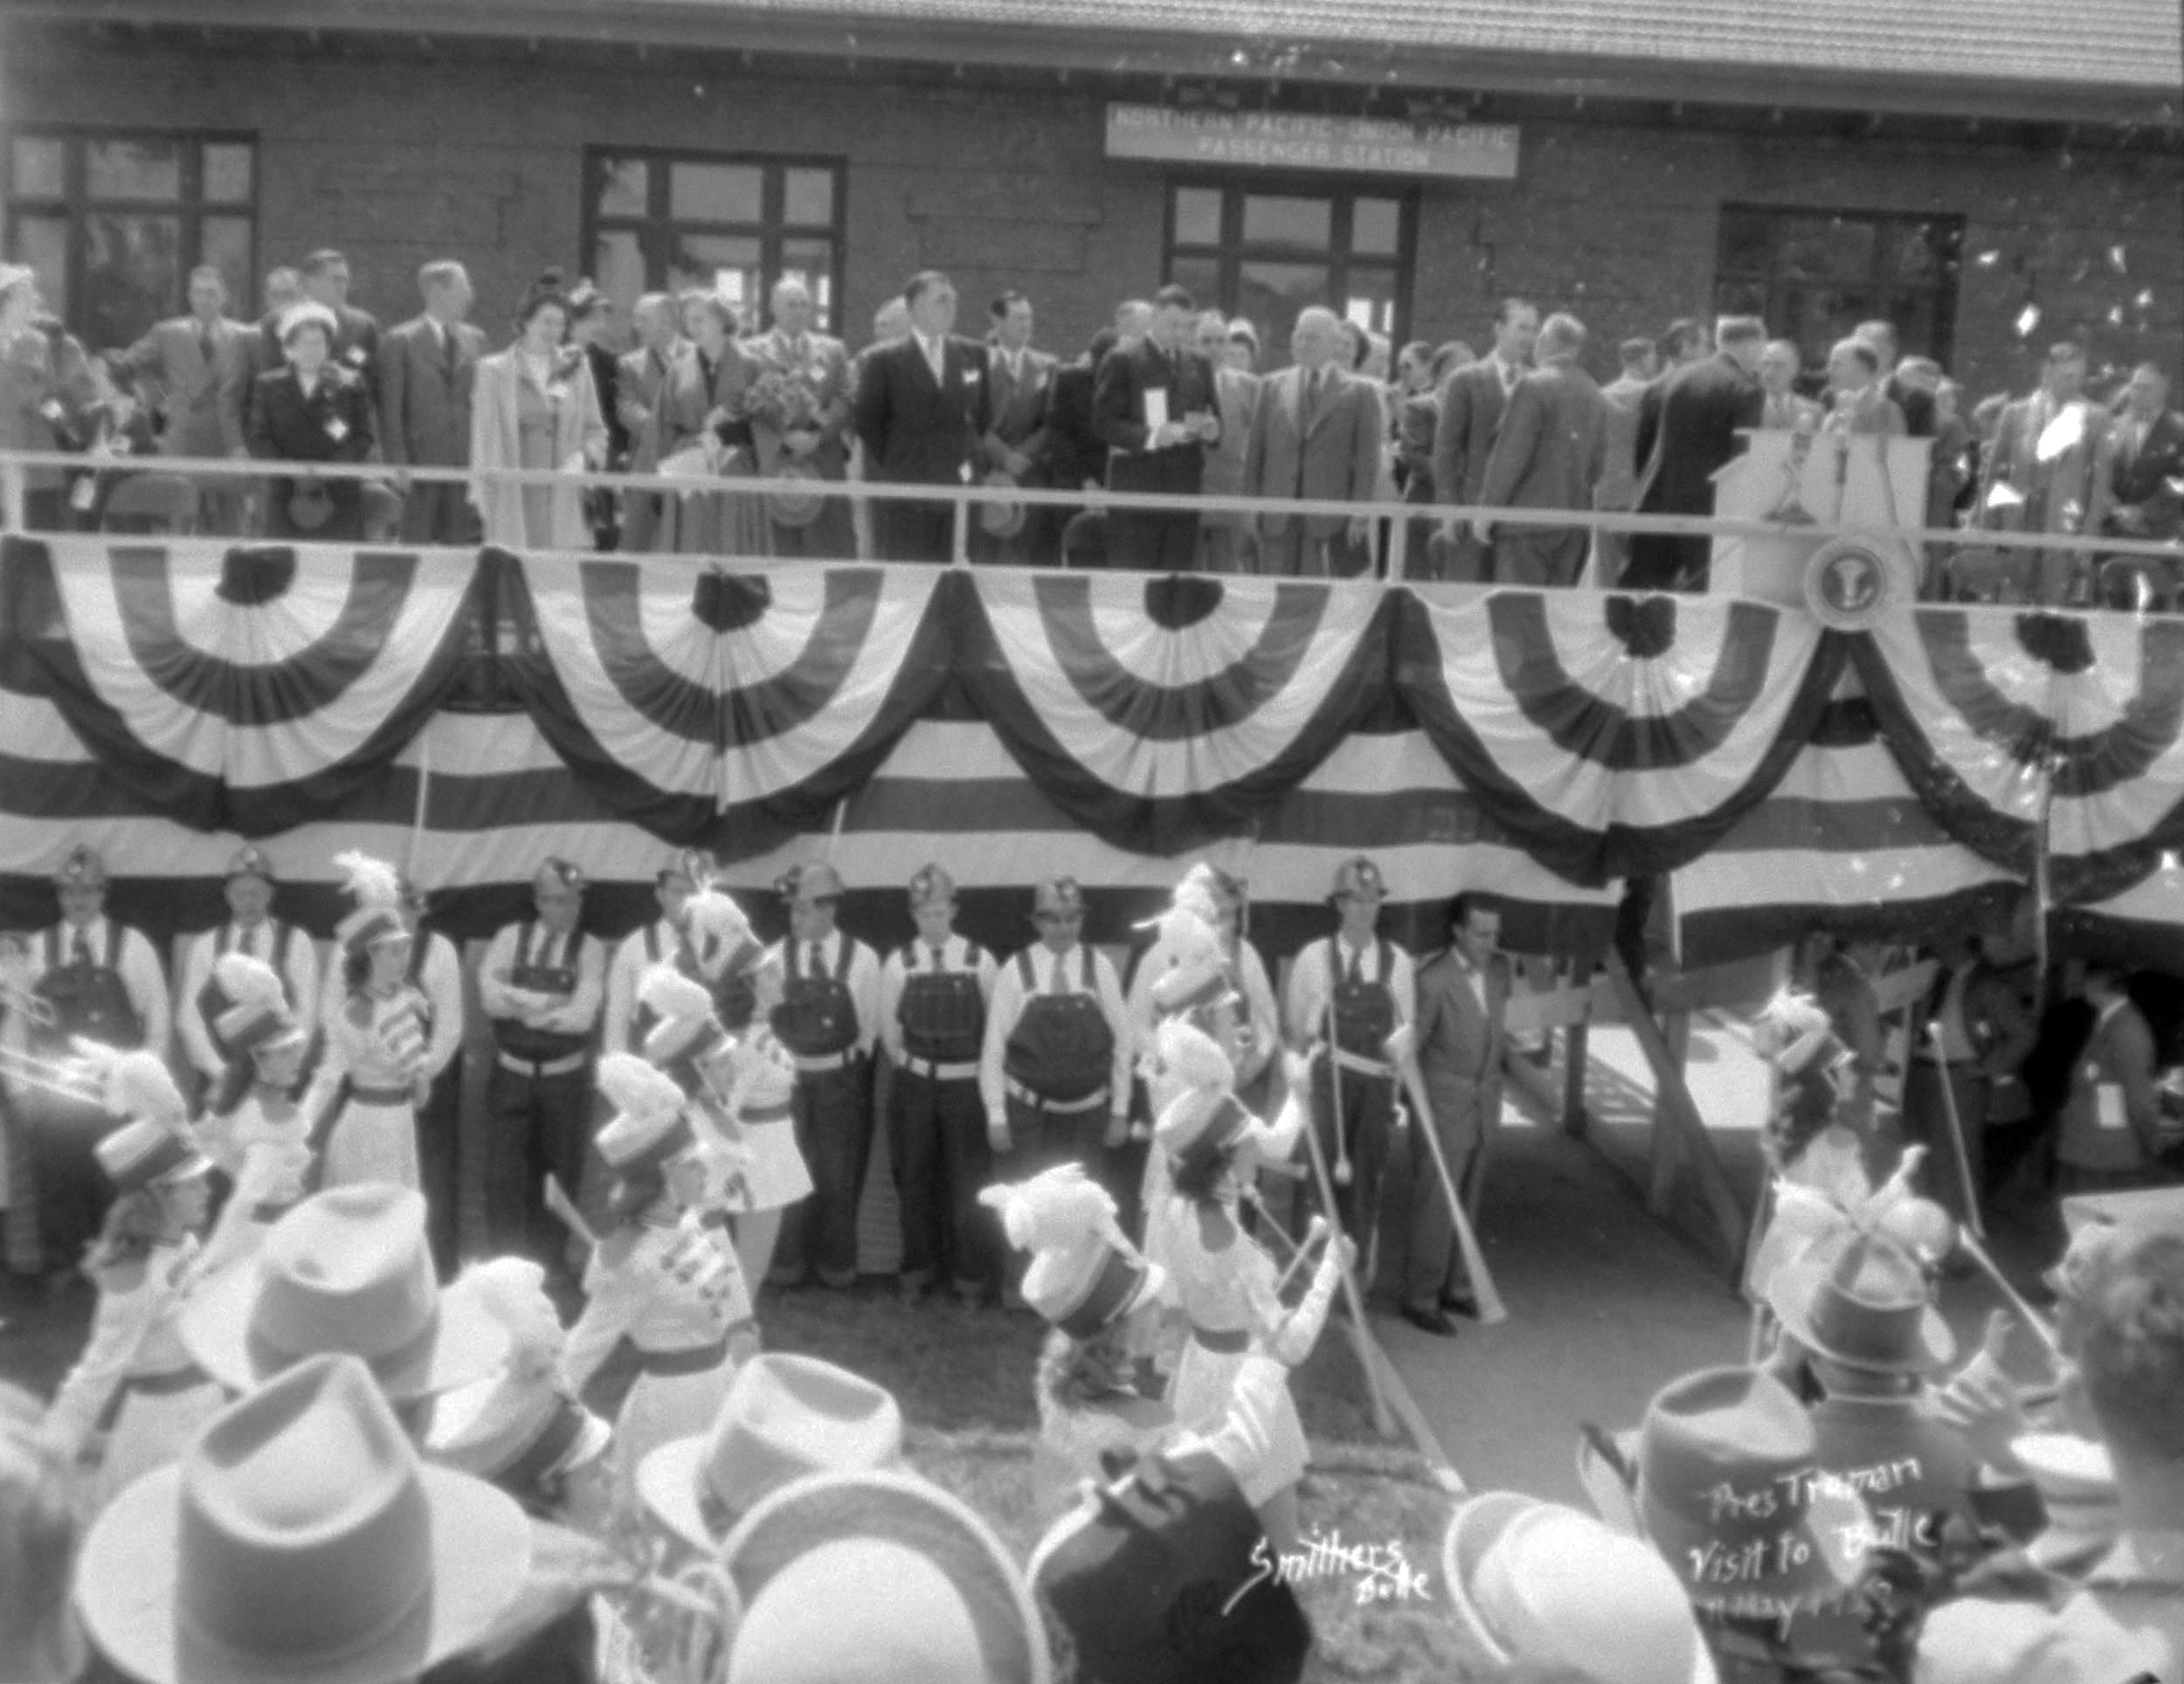 President Harry S. Truman stands at the front of the Depot ready to address a crowd of spectators. Photo 32-080-04_C. Owen Smith courtesy of Butte-Silver Bow Public Archives